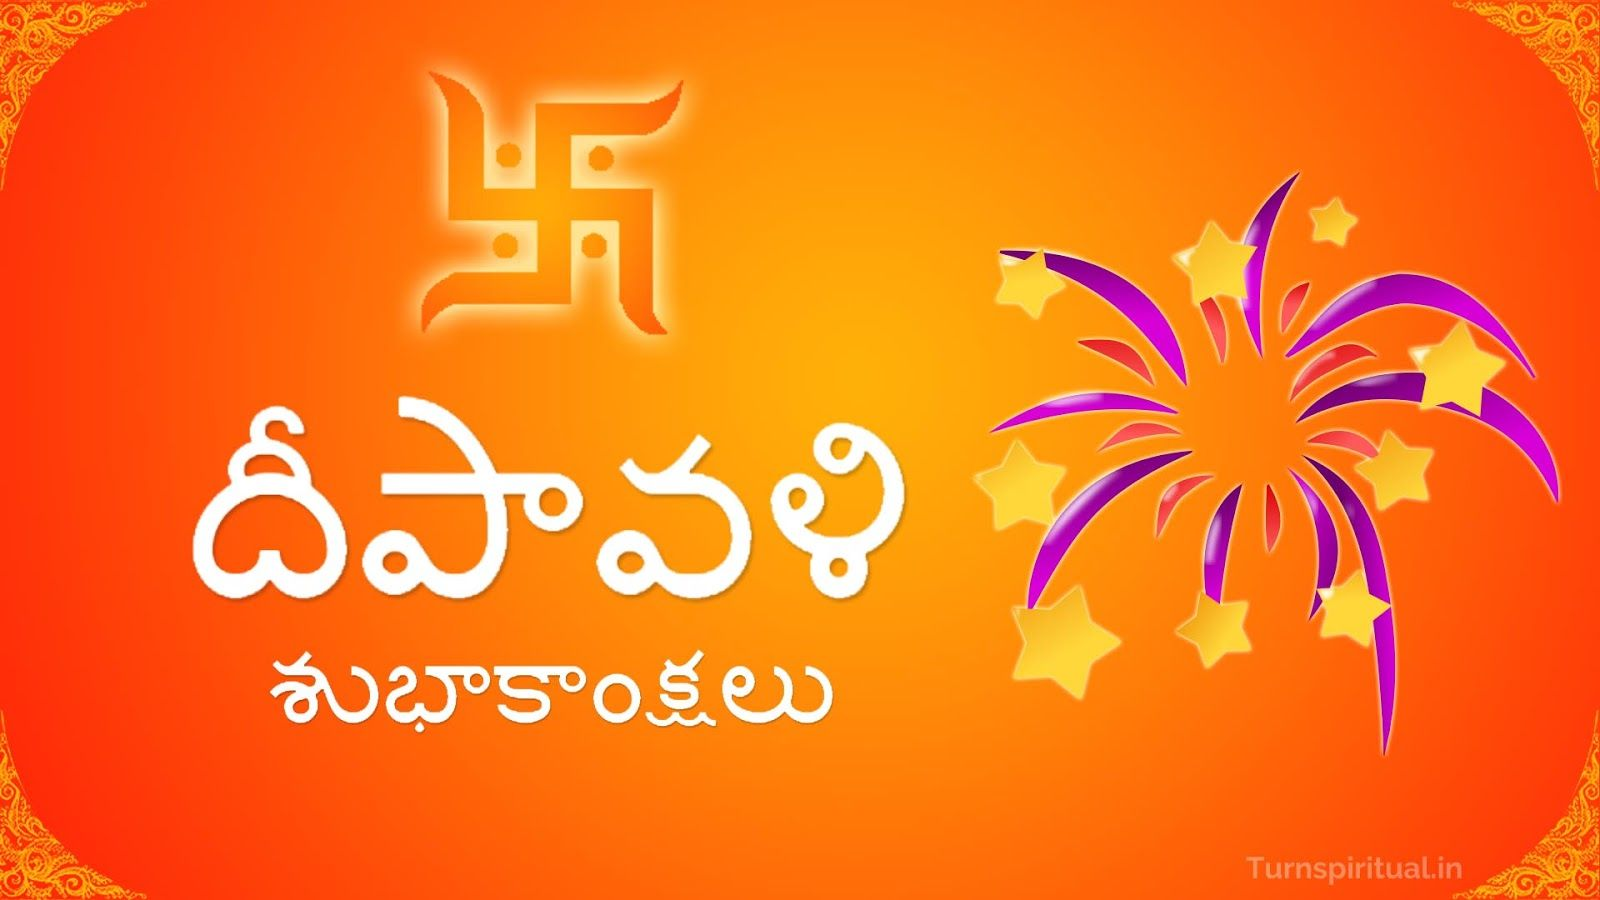 6 happy deepavali telugu wishes greeting cards images 6 happy deepavali telugu wishes greeting cards images kristyandbryce Image collections